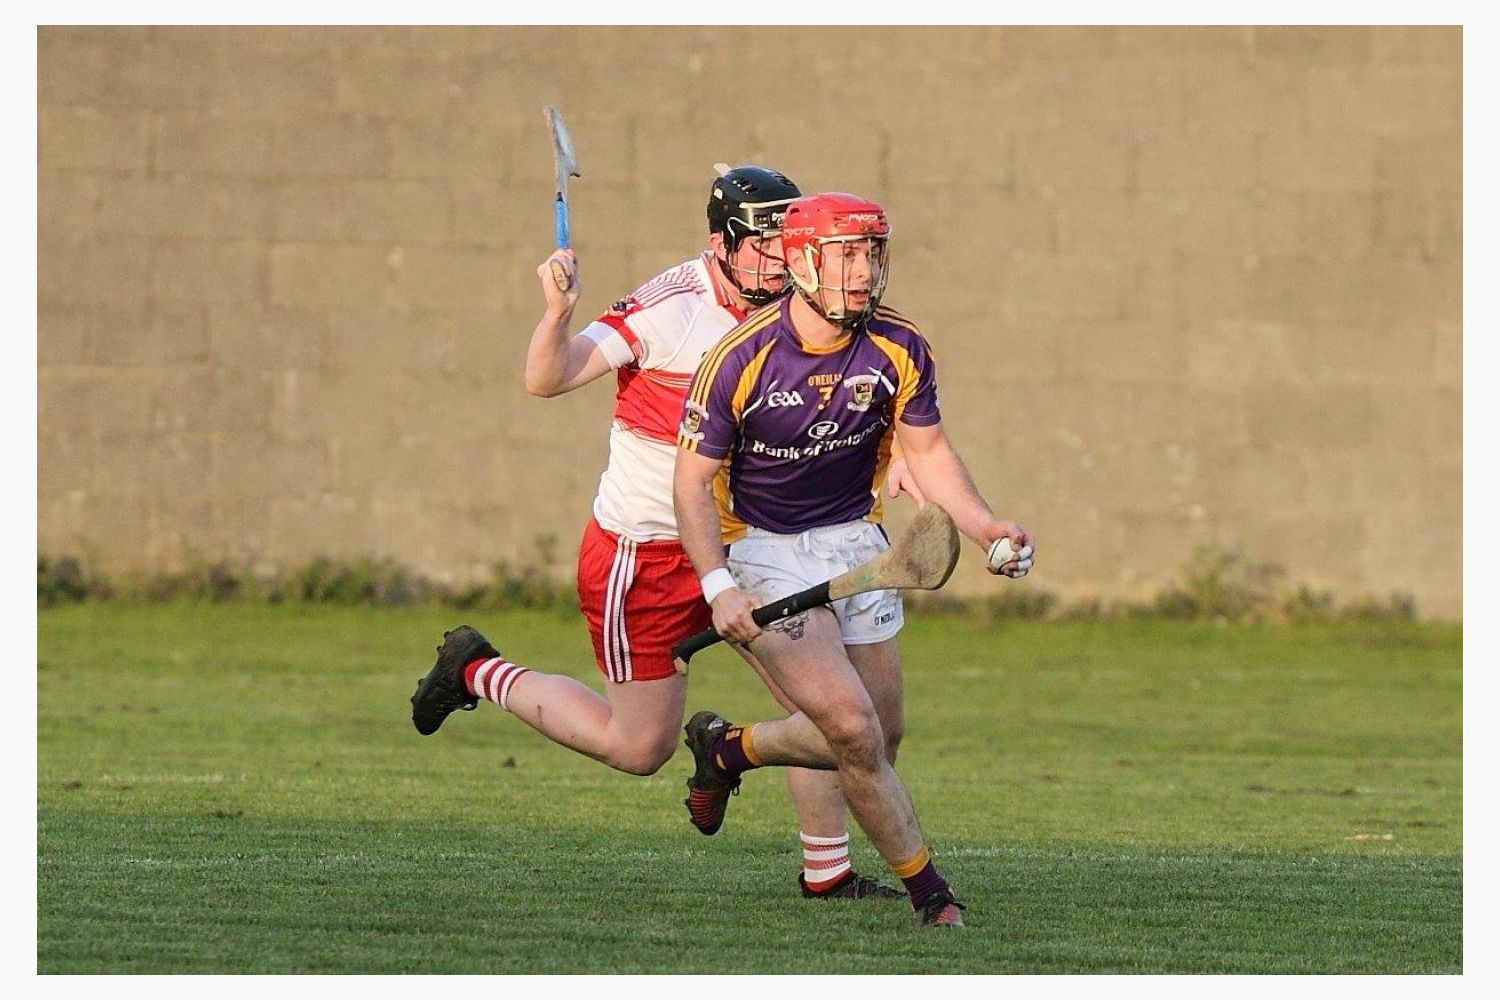 Senior A Hurlers vs Whithall in Championship